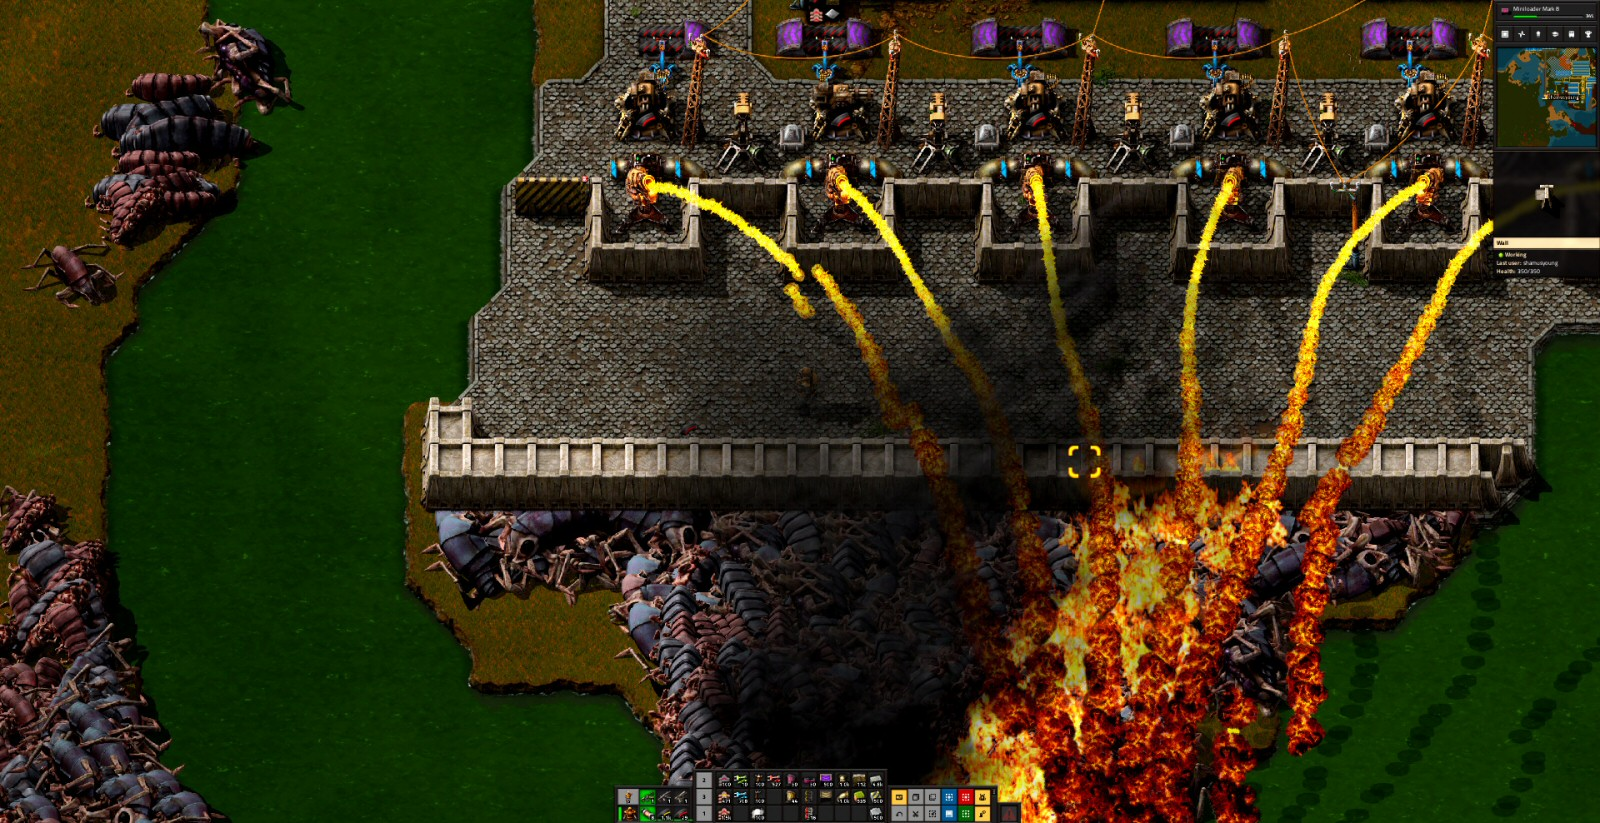 These defenses seem pretty tight, but occasionally you'll get a larger attack that punches through. If you're not there to deal with it, then the biters will pour through and break everything. At that point you'll need to restore to some twenty-minute old save. Either that, or babysit everything all the time. Either way, it's not super-interesting.